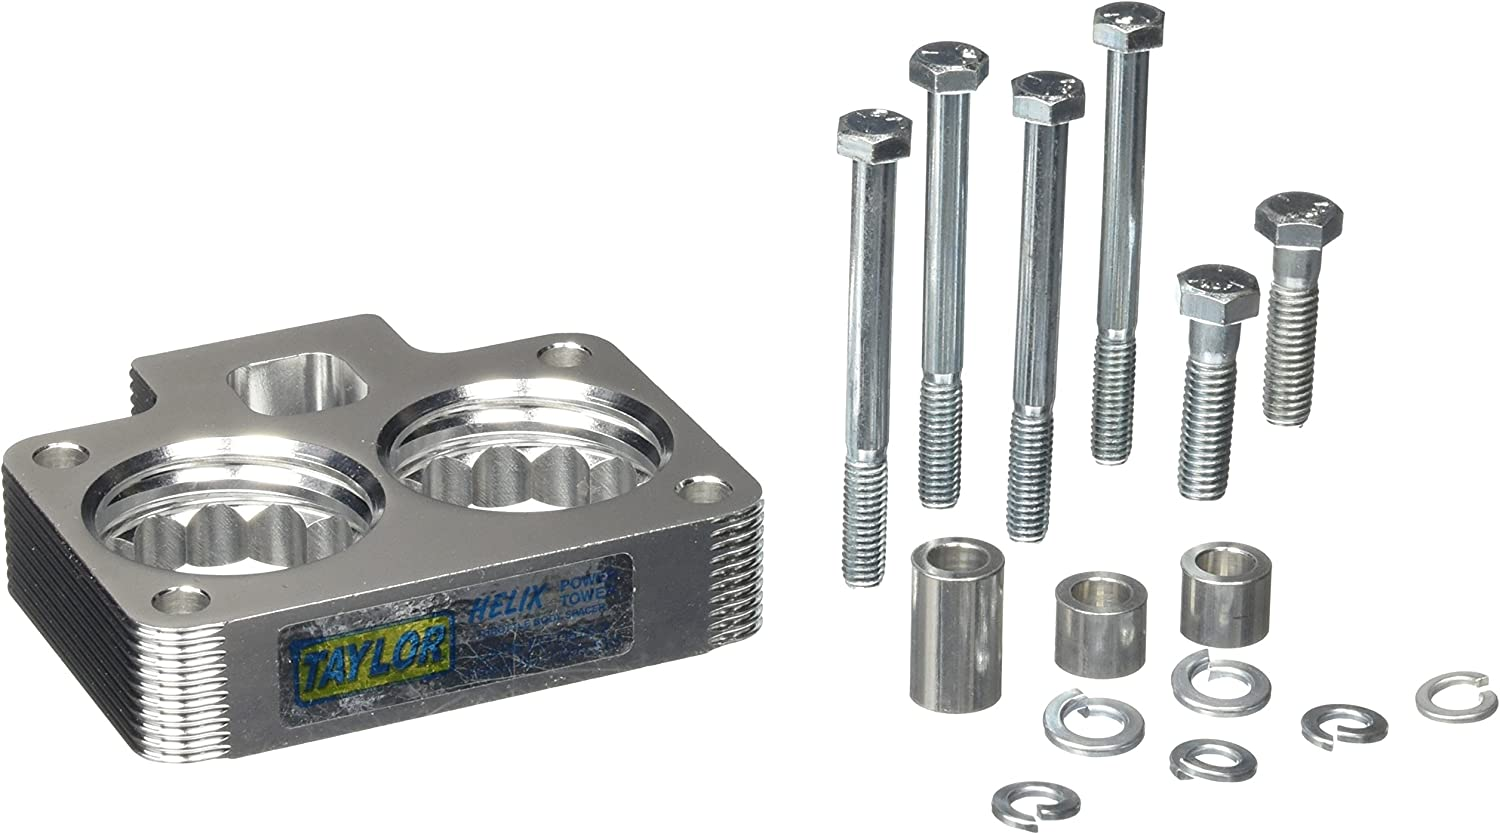 Taylor Cable 59015 Helix Power Plus Very popular Body Tower Spacer Branded goods Throttle